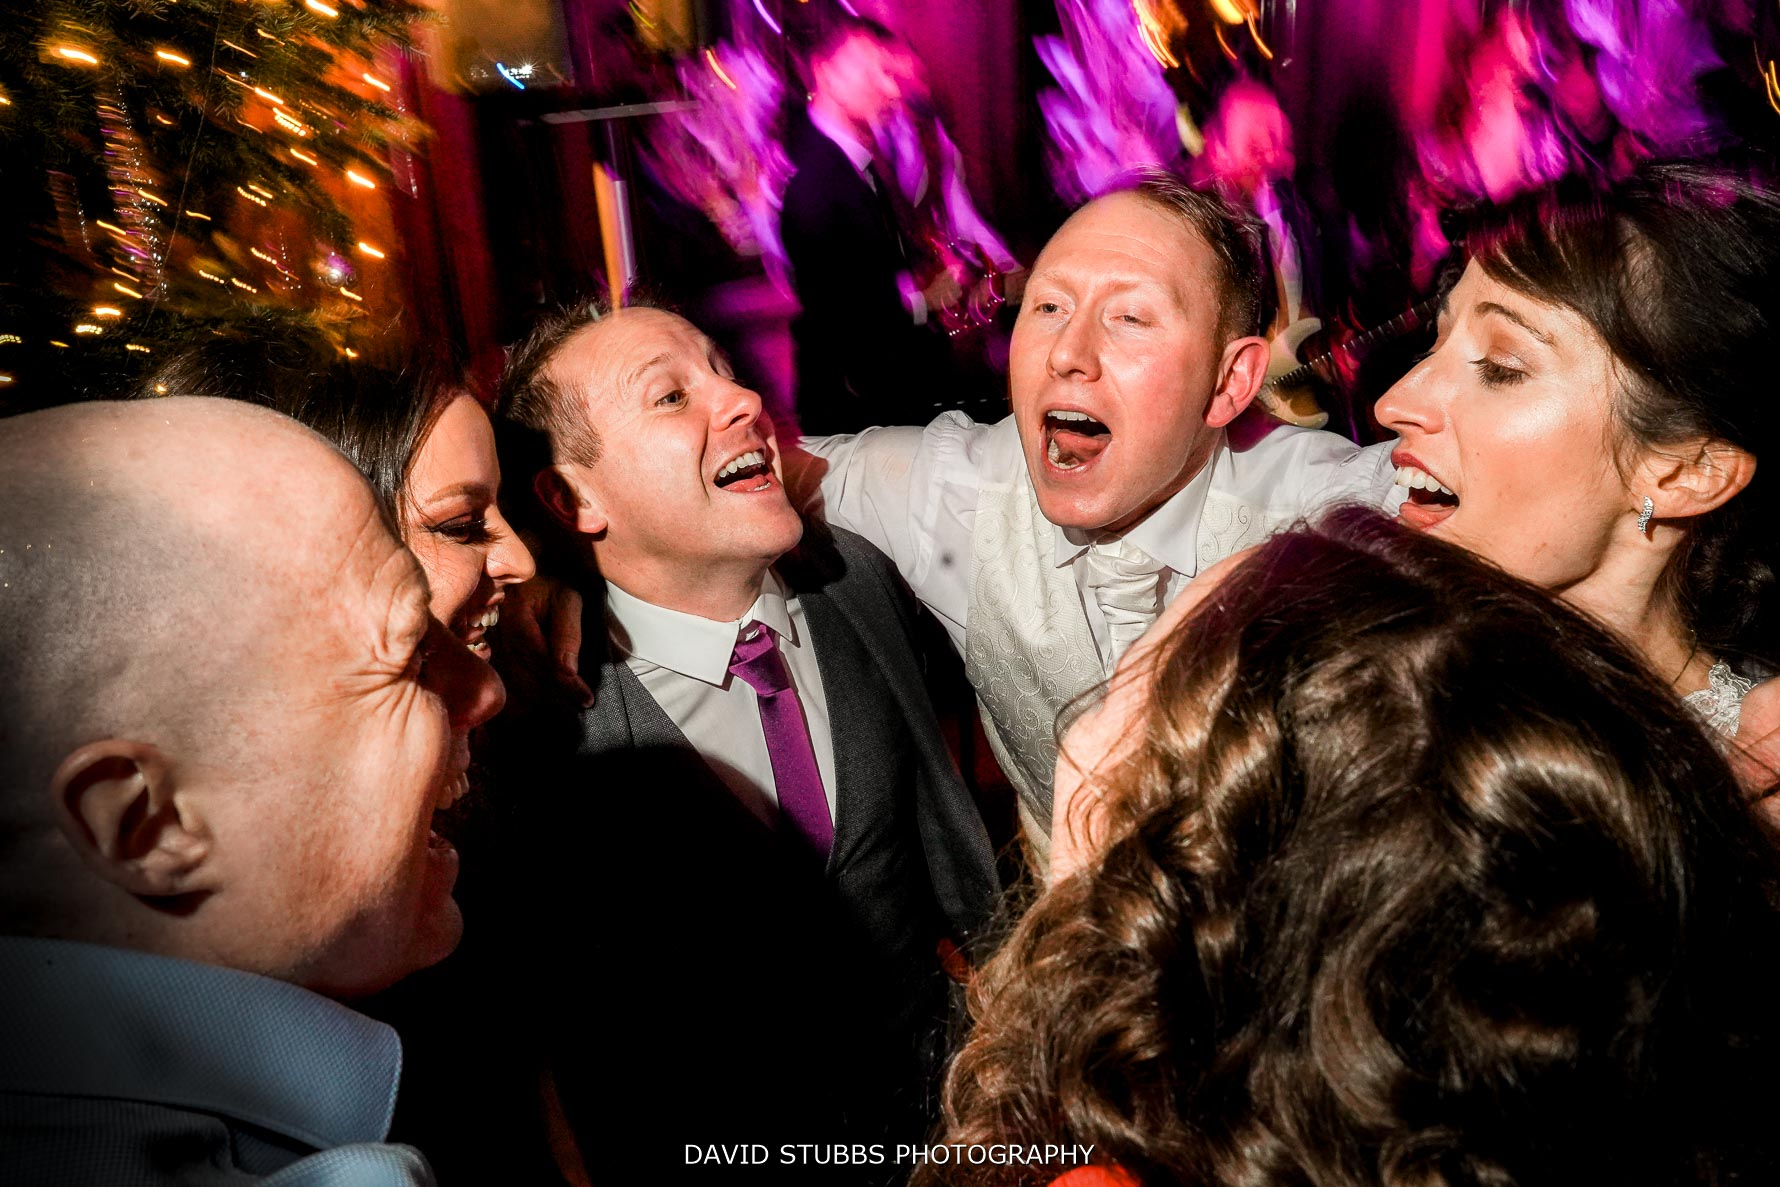 final shot of the night at this Thornton manor wedding